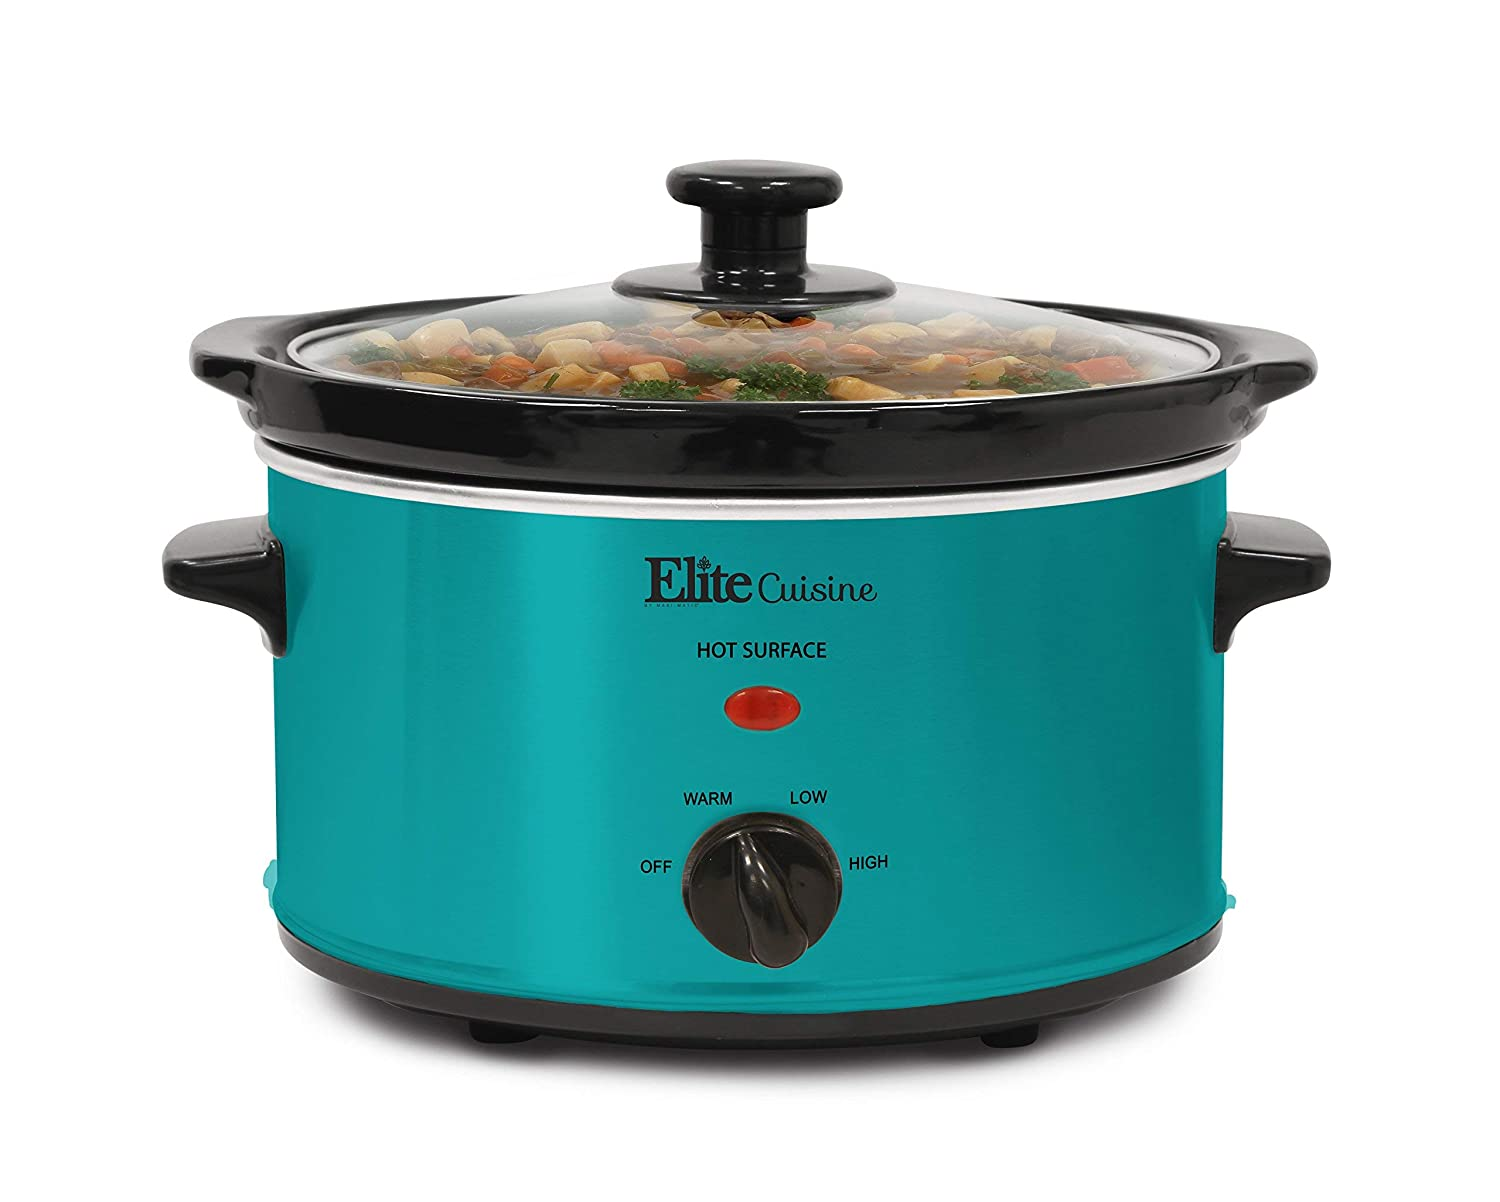 Elite Gourmet MST-275XT Electric Slow Cooker, Adjustable Temp, Entrees, Sauces, Stews and Dips, Dishwasher-Safe Glass Lid & Ceramic Pot, 2Qt Capacity, Teal (Renewed)